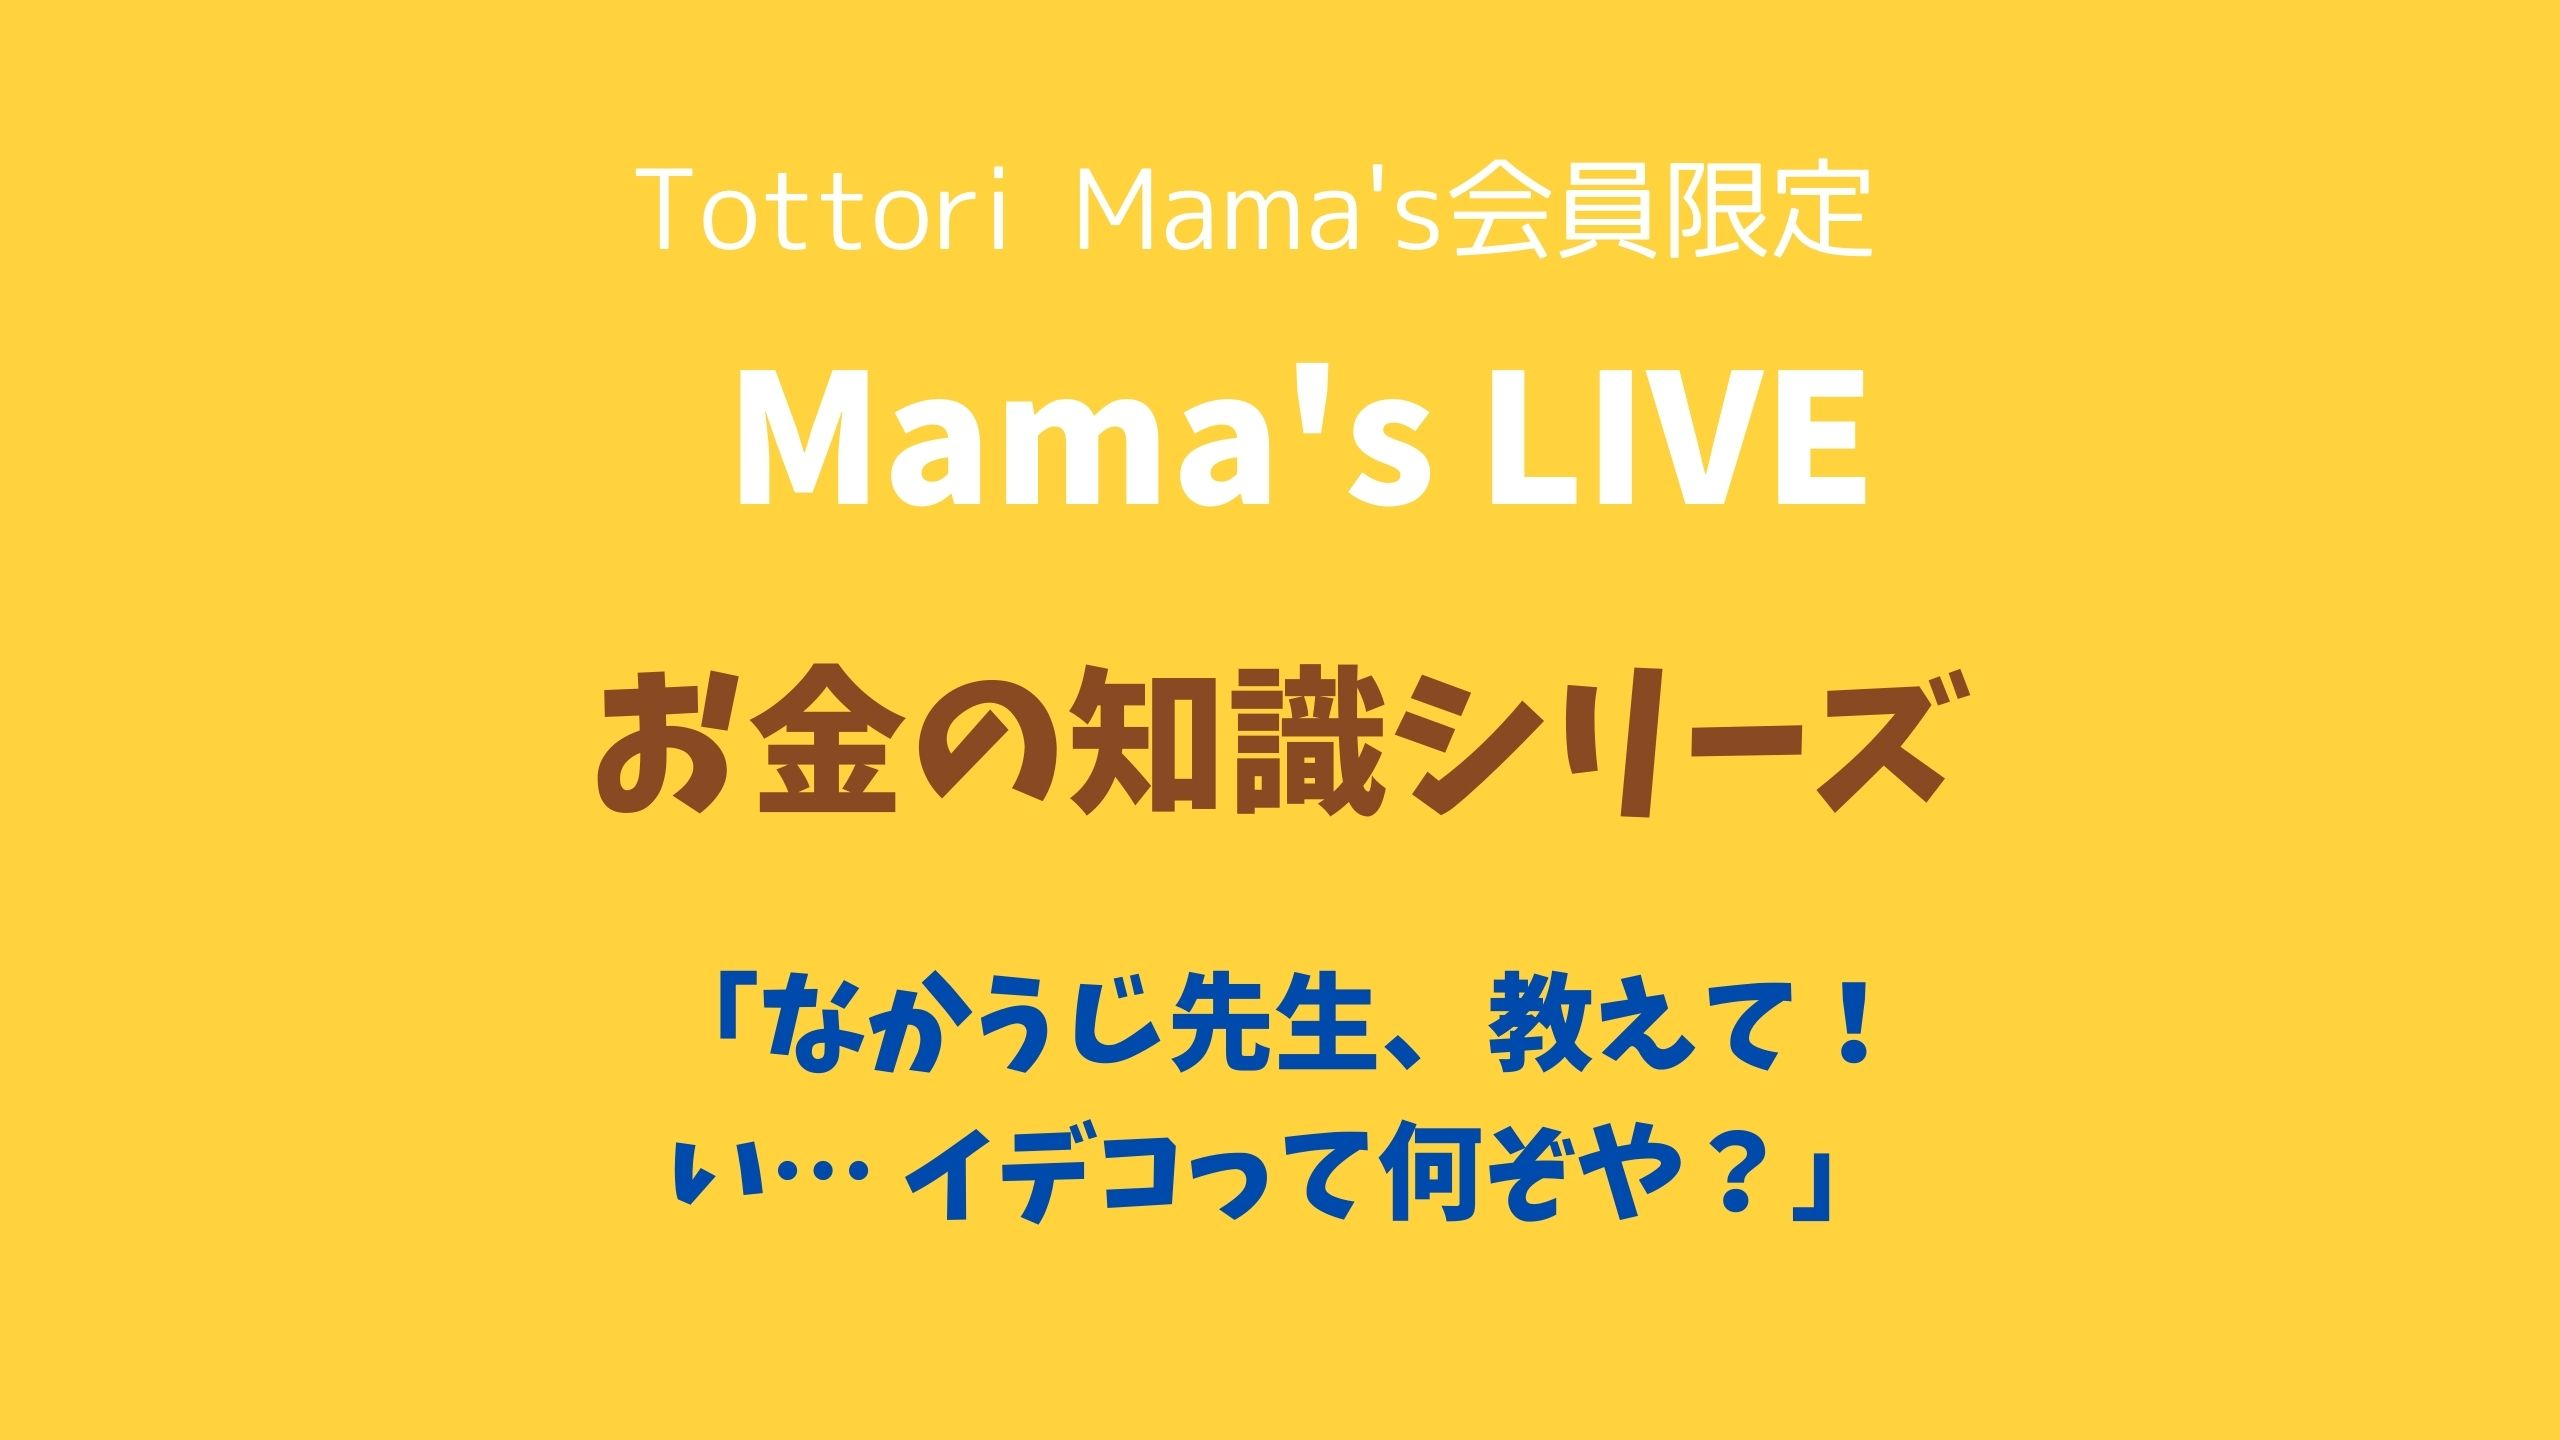 Tottori Mama's channelのコピーのコピーのコピーのコピー